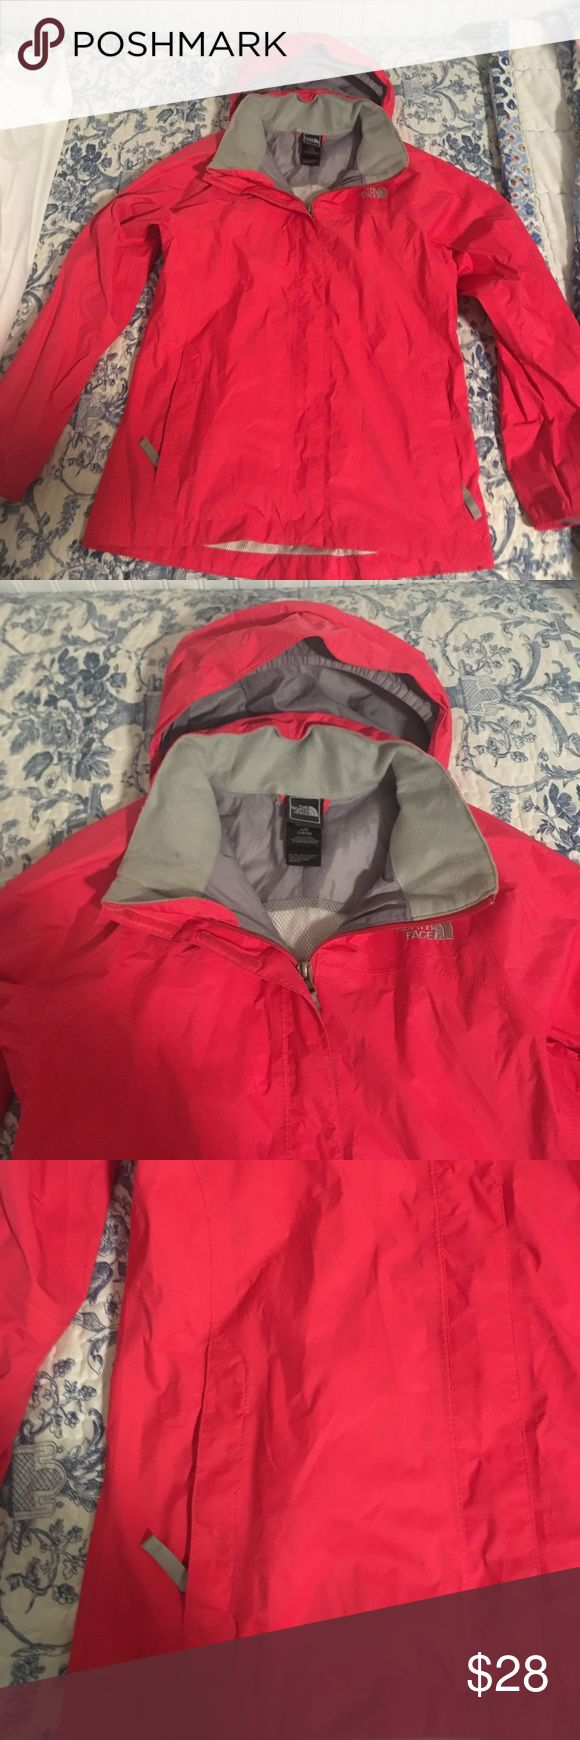 North Face Rain Jacket North Face girls pink rain jacket. Only a very small mark on the back of the sleeve. Very small and no other marks or scratches. Considering bundles with other items! North Face Jackets & Coats Utility Jackets